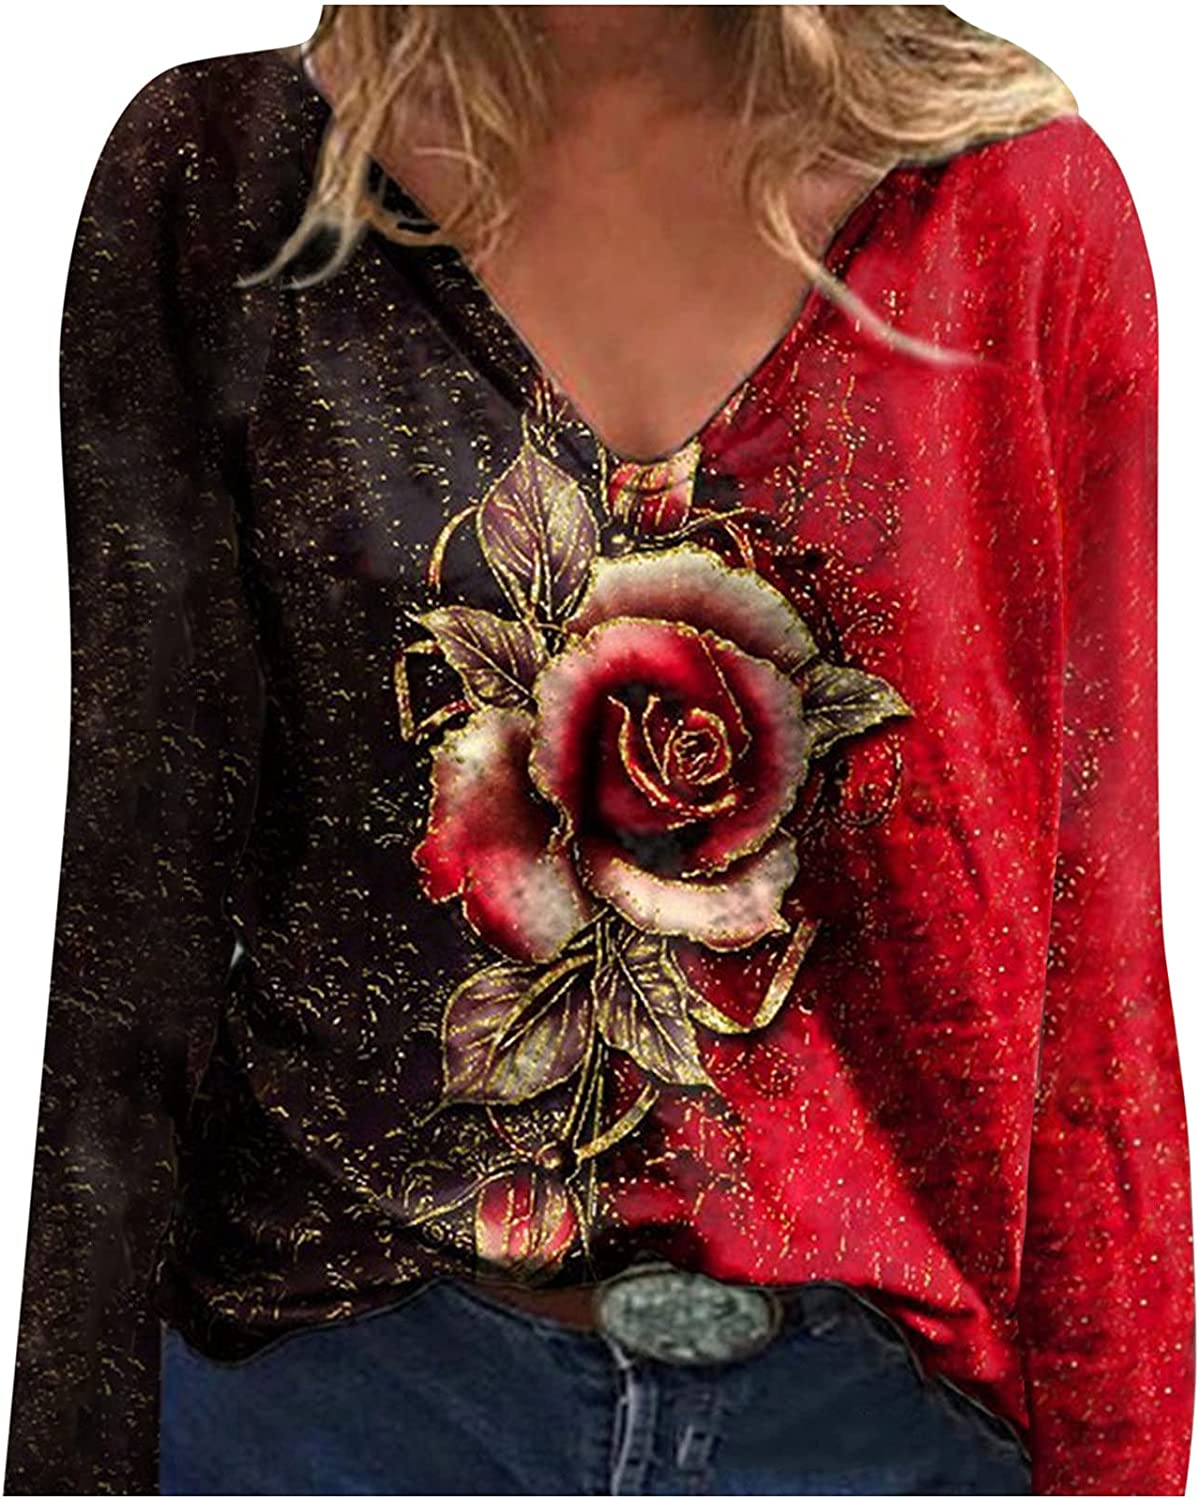 Meichang Women's V Neck Tunic Tops Casual Long Sleeve T Shirts Colorful Rose Flower Print Blouses Loose Comfy Tee